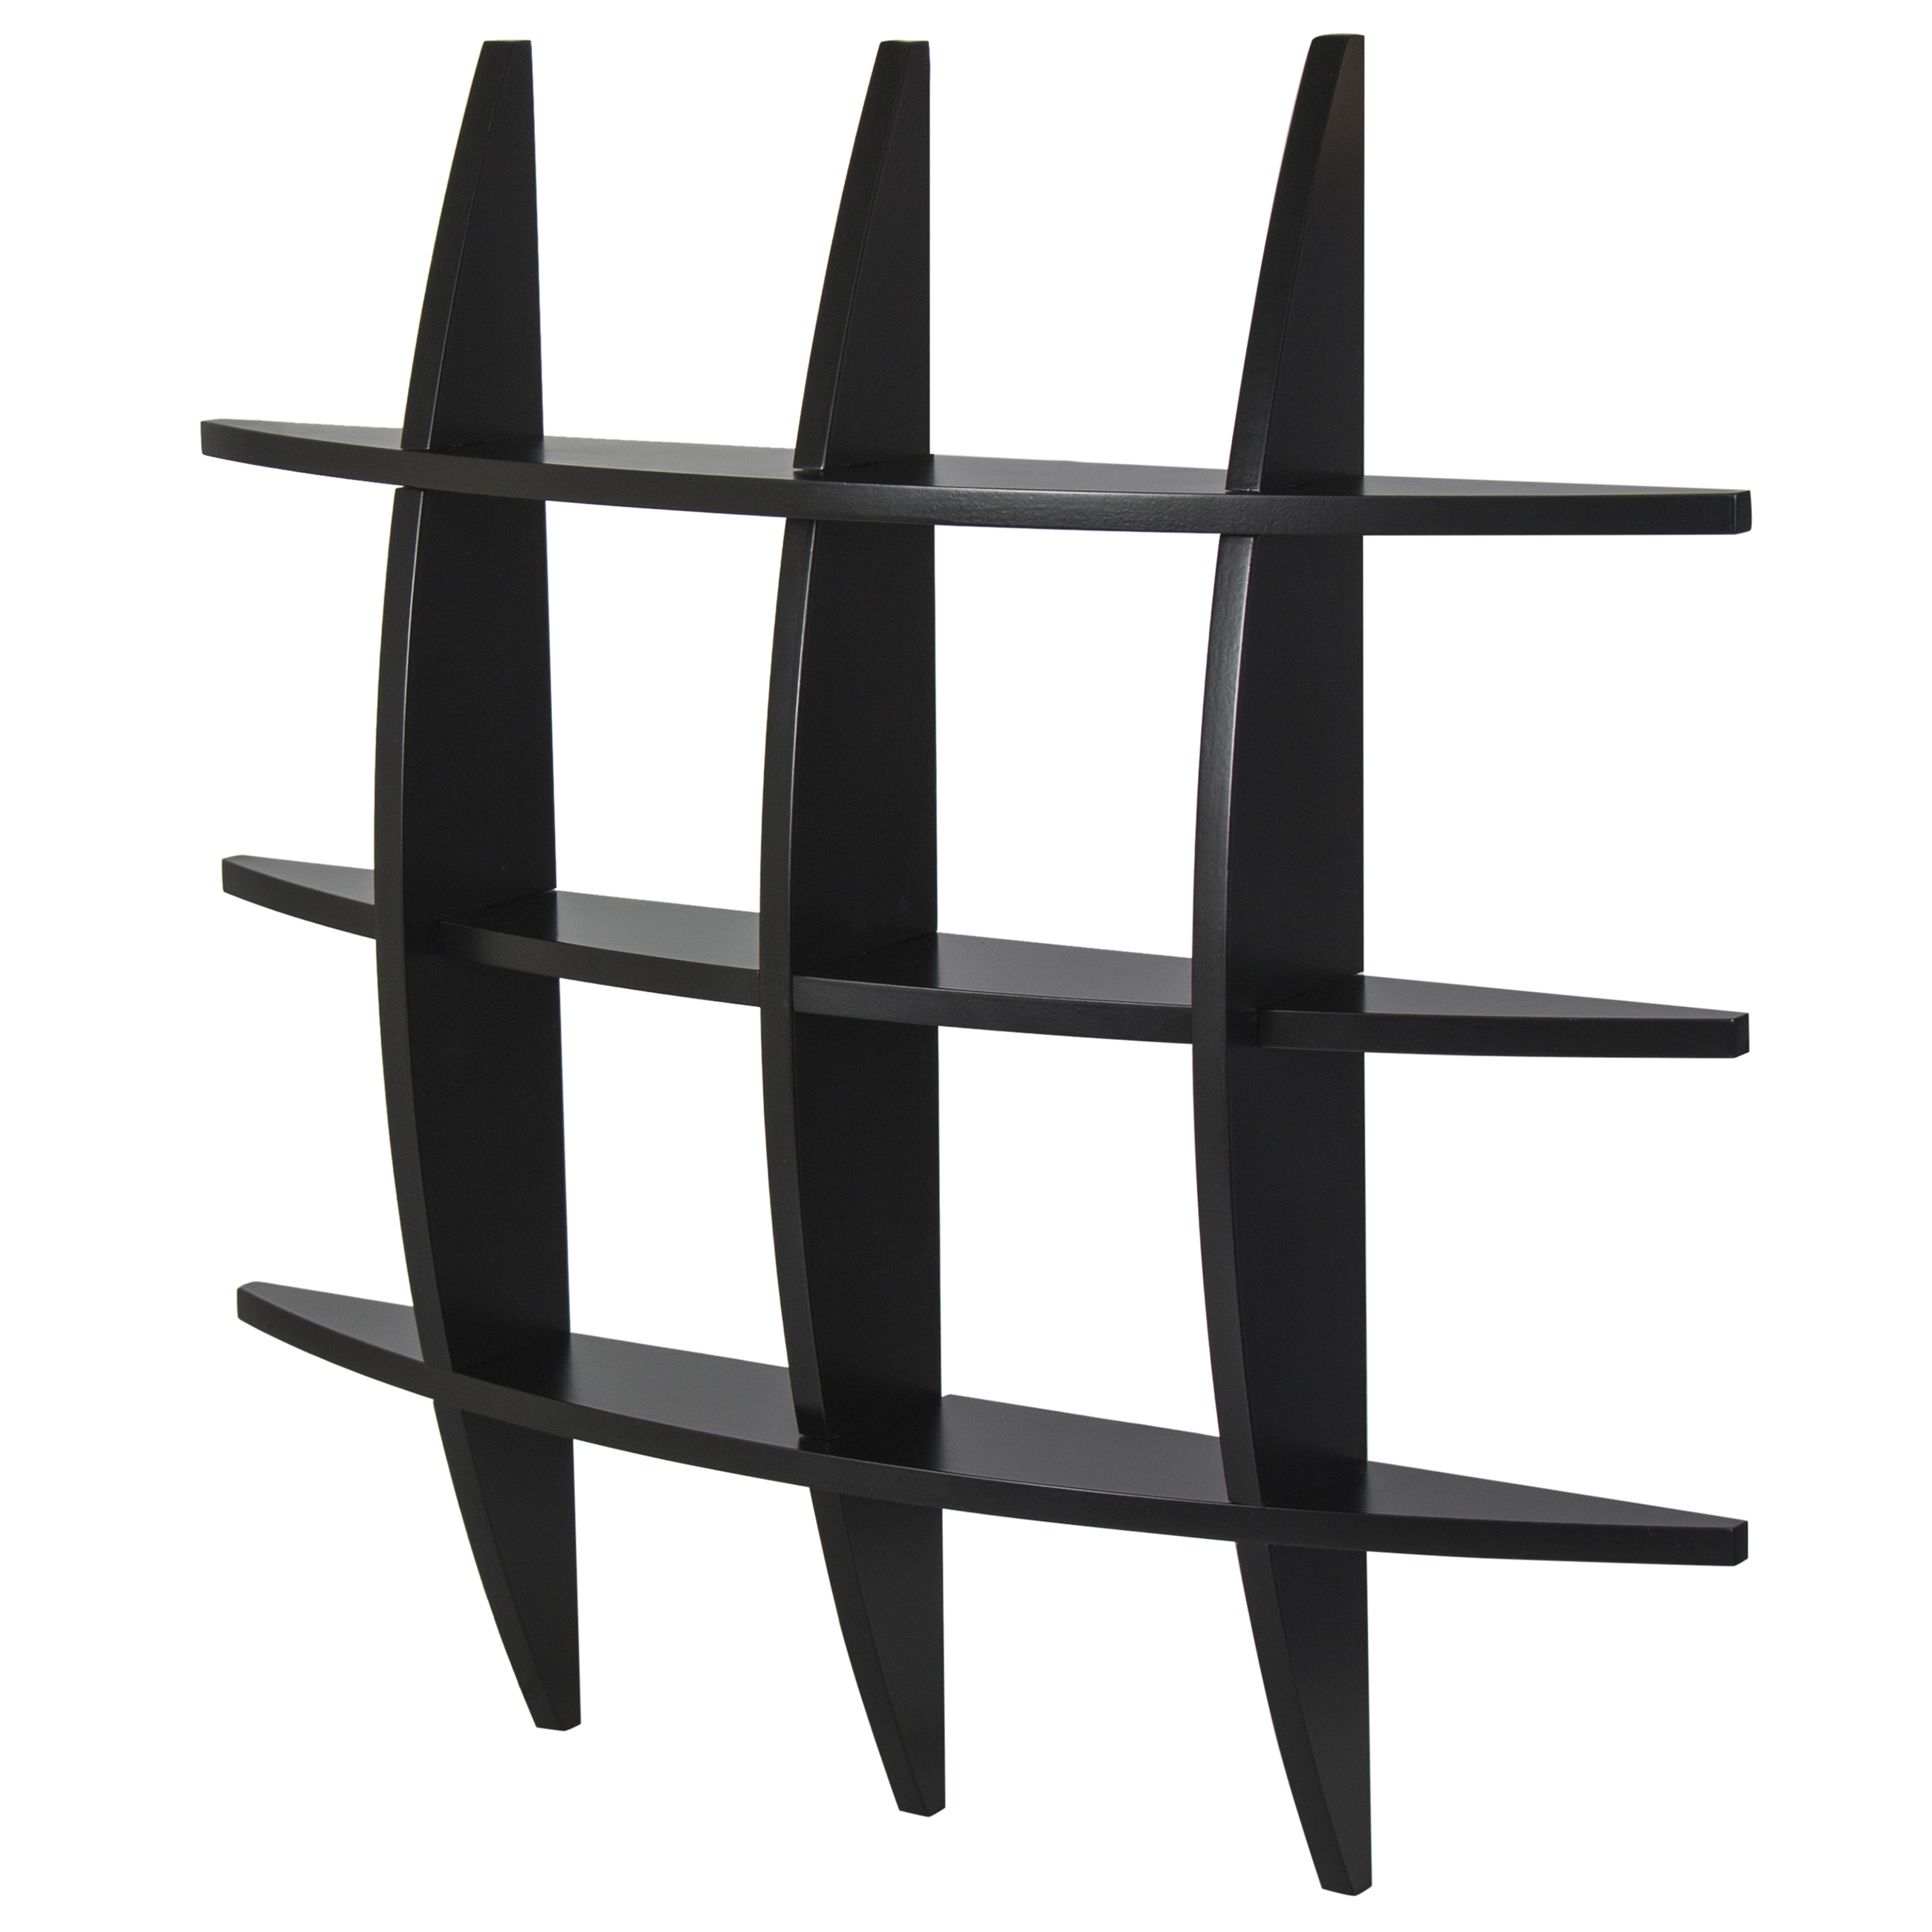 bcp cross wood wall shelf black finish home decor furniture walmartcom - Home Decor Furniture